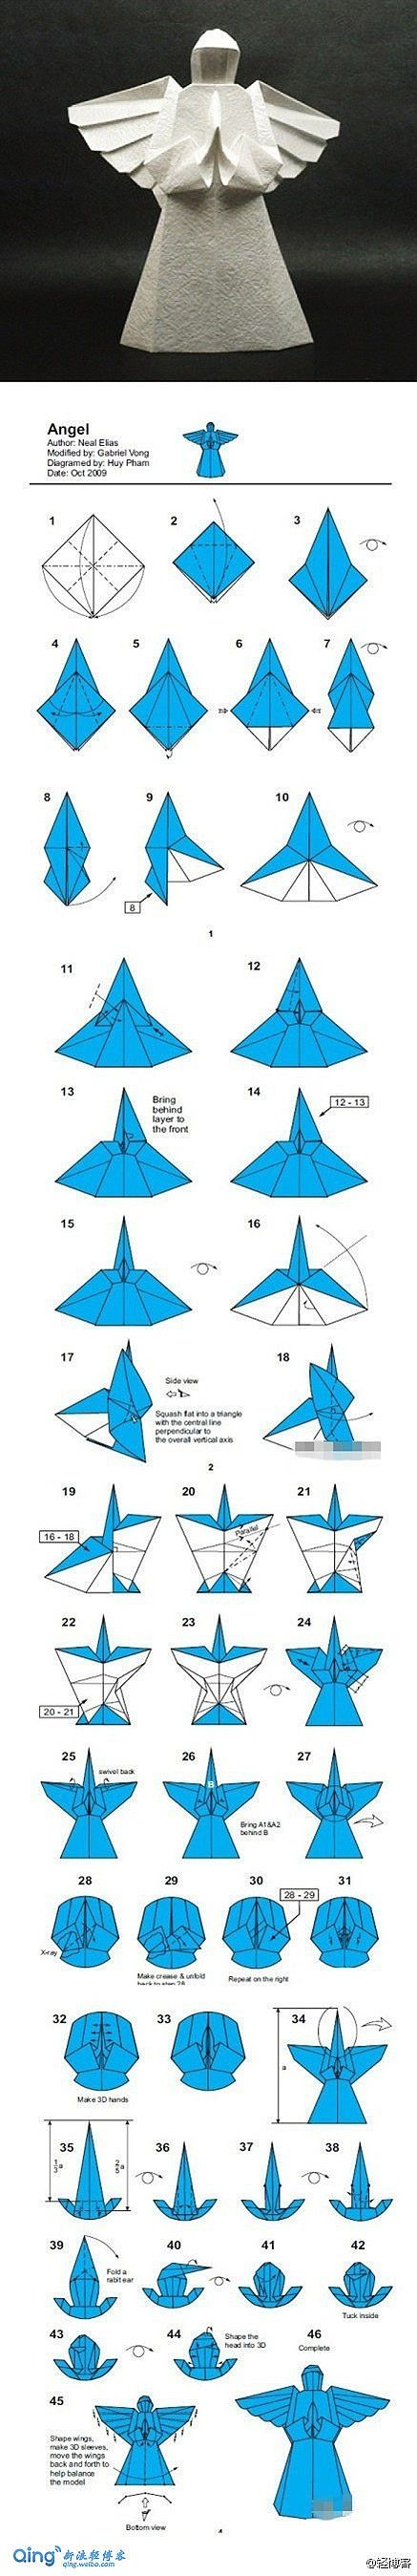 Handmade Diy Style Accessories Elements Of Art And Design 3d Paper How To Fold An Origami Naboo Starfighter Other Starships From Star Noel Christmas